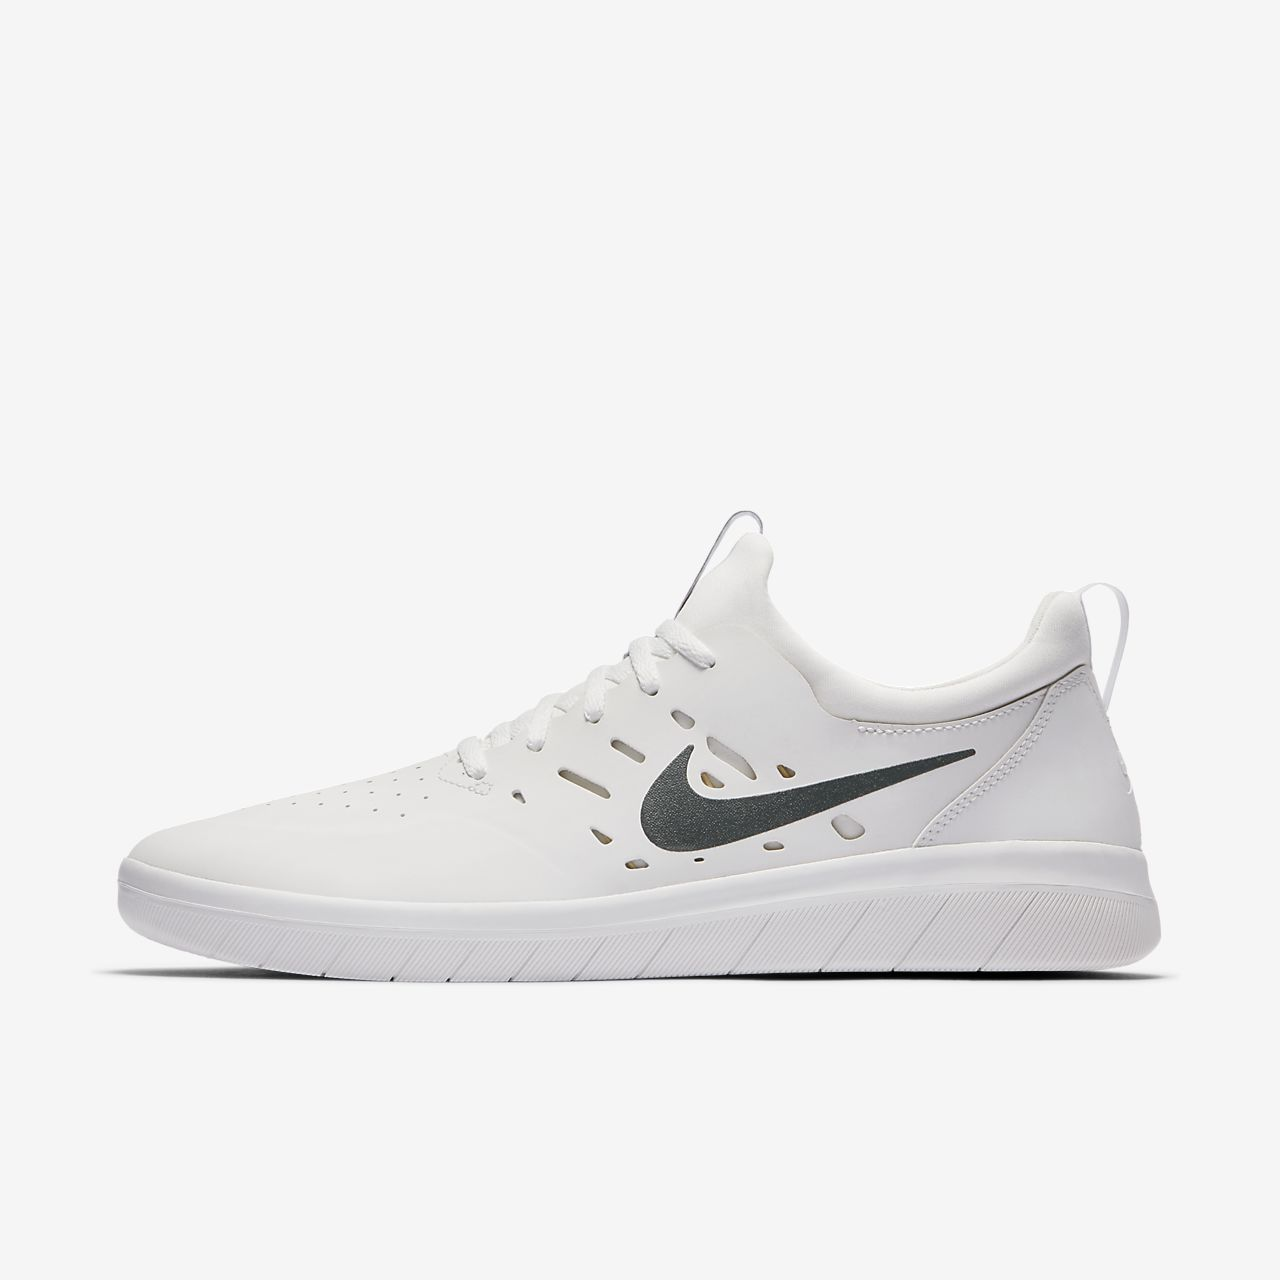 timeless design 18bee 3cec1 ... Chaussure de skateboard Nike SB Nyjah Free